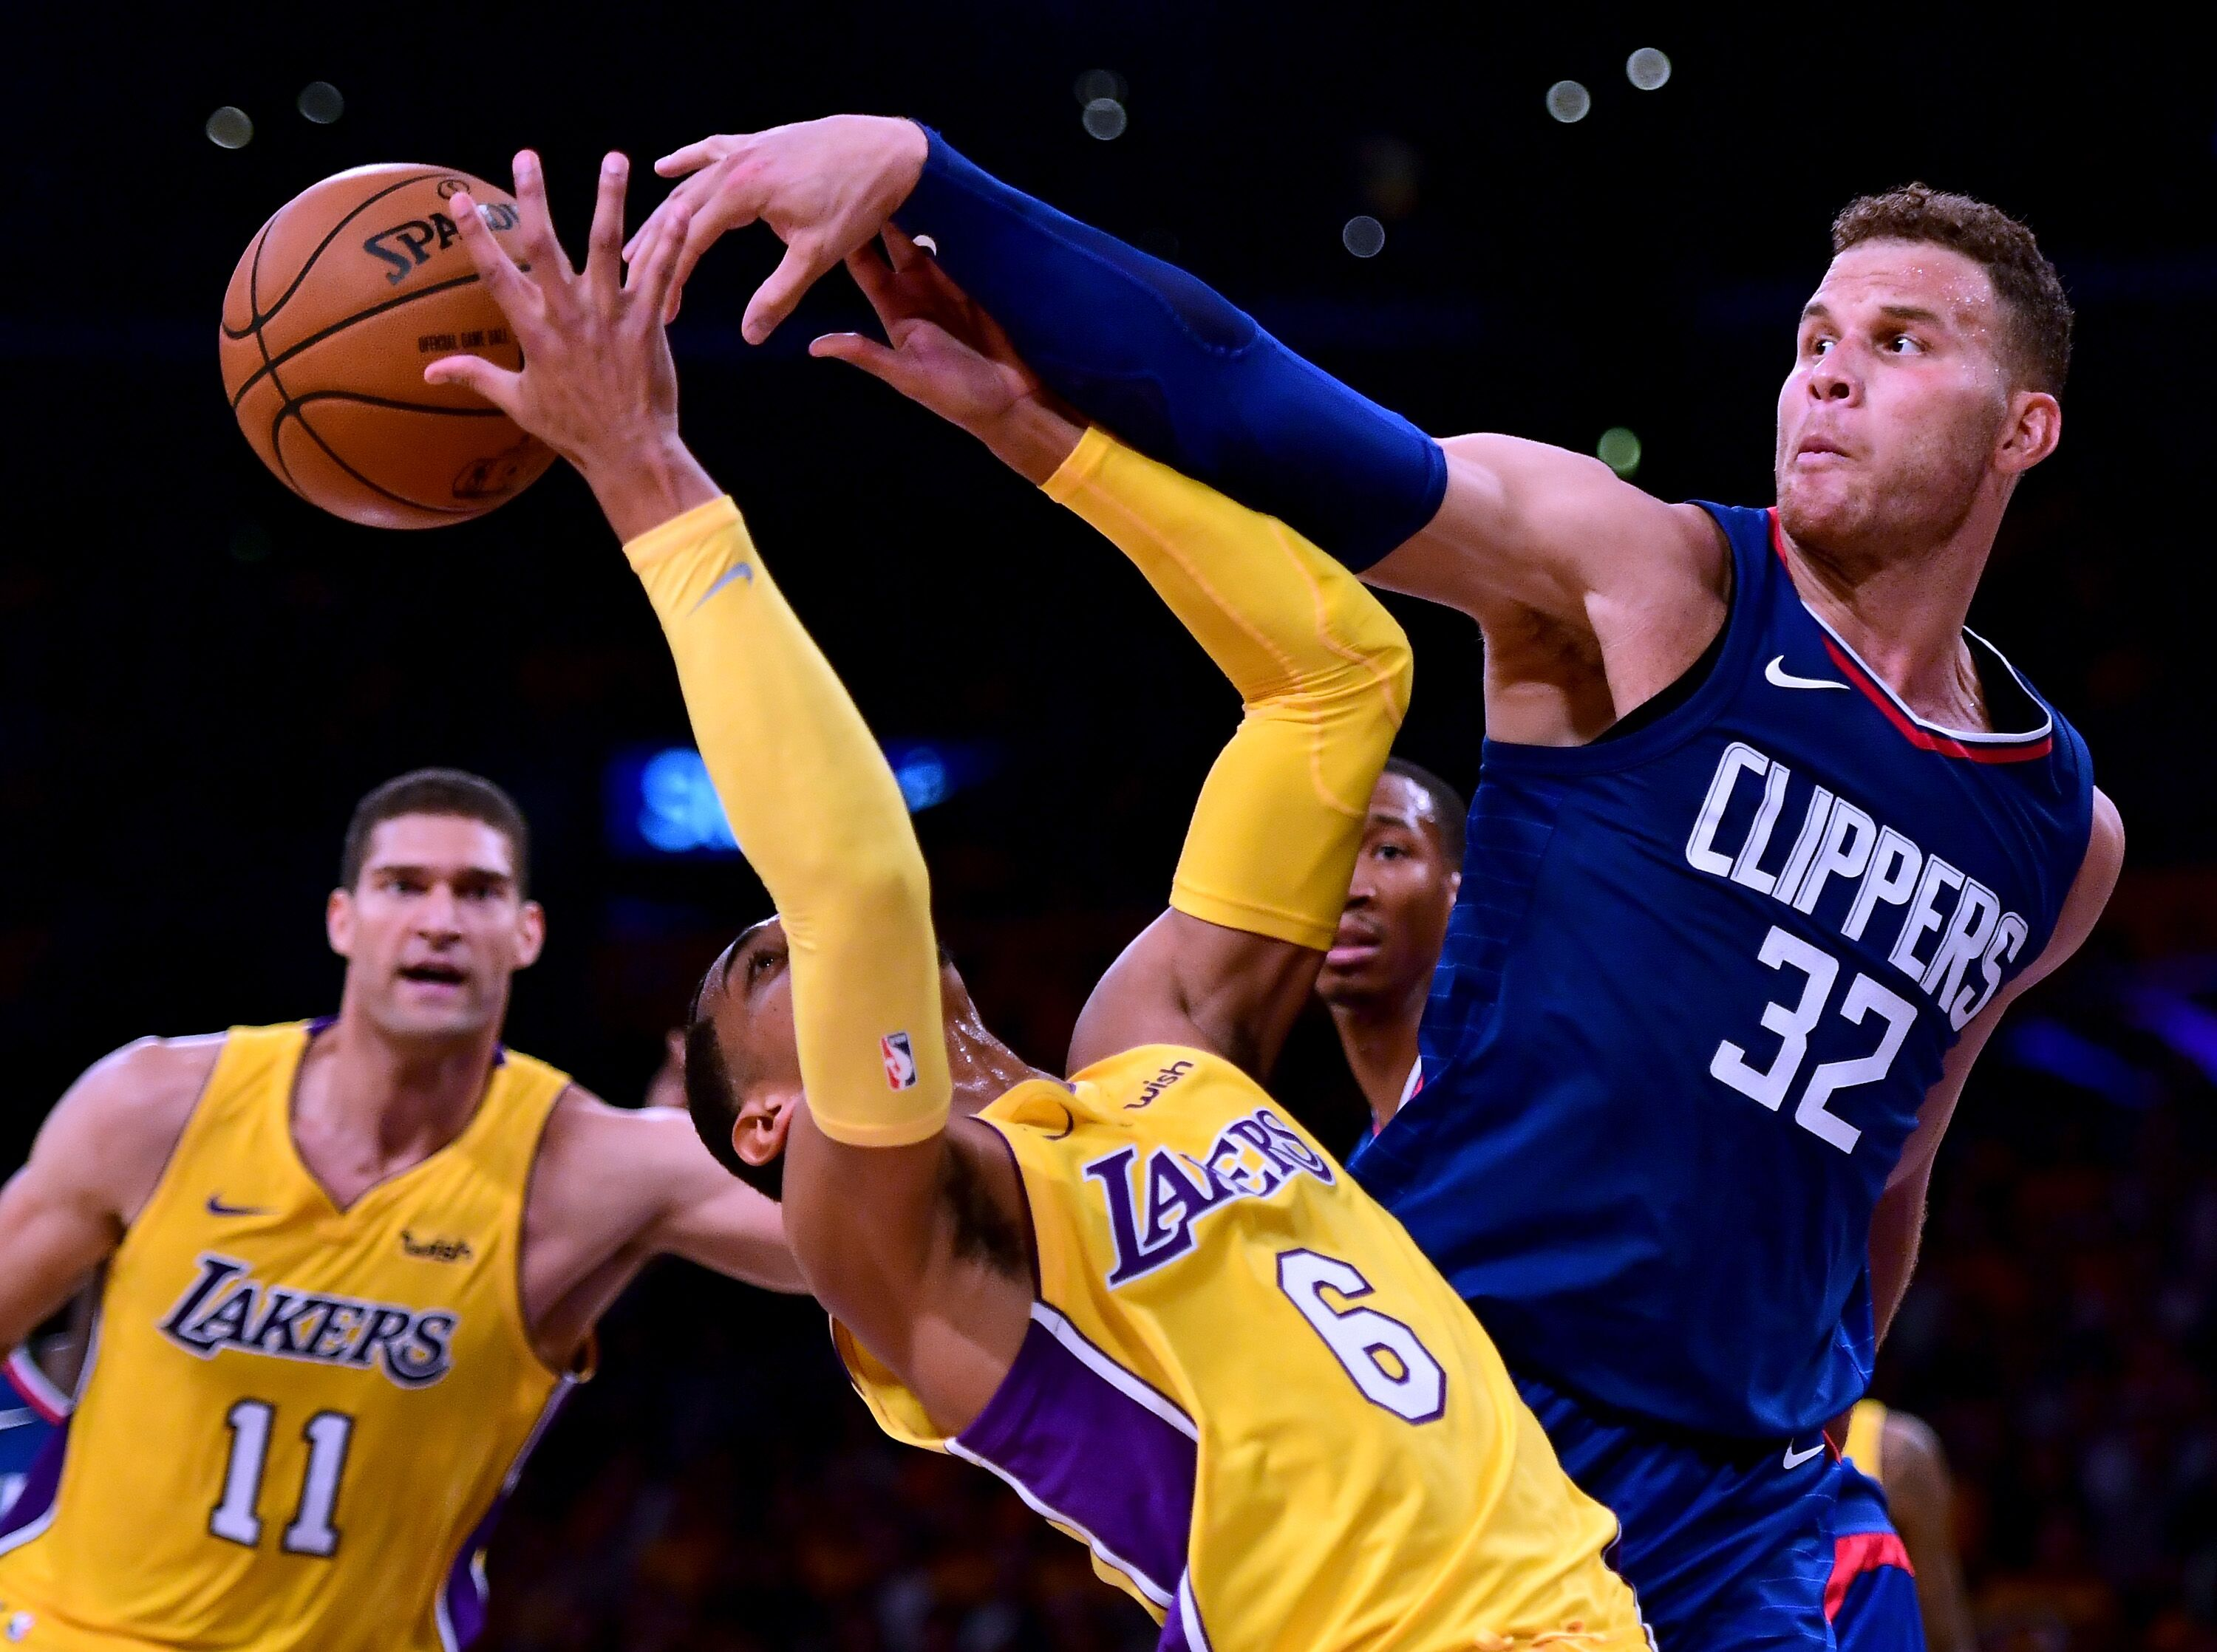 863384708-los-angeles-clippers-v-los-angeles-lakers.jpg